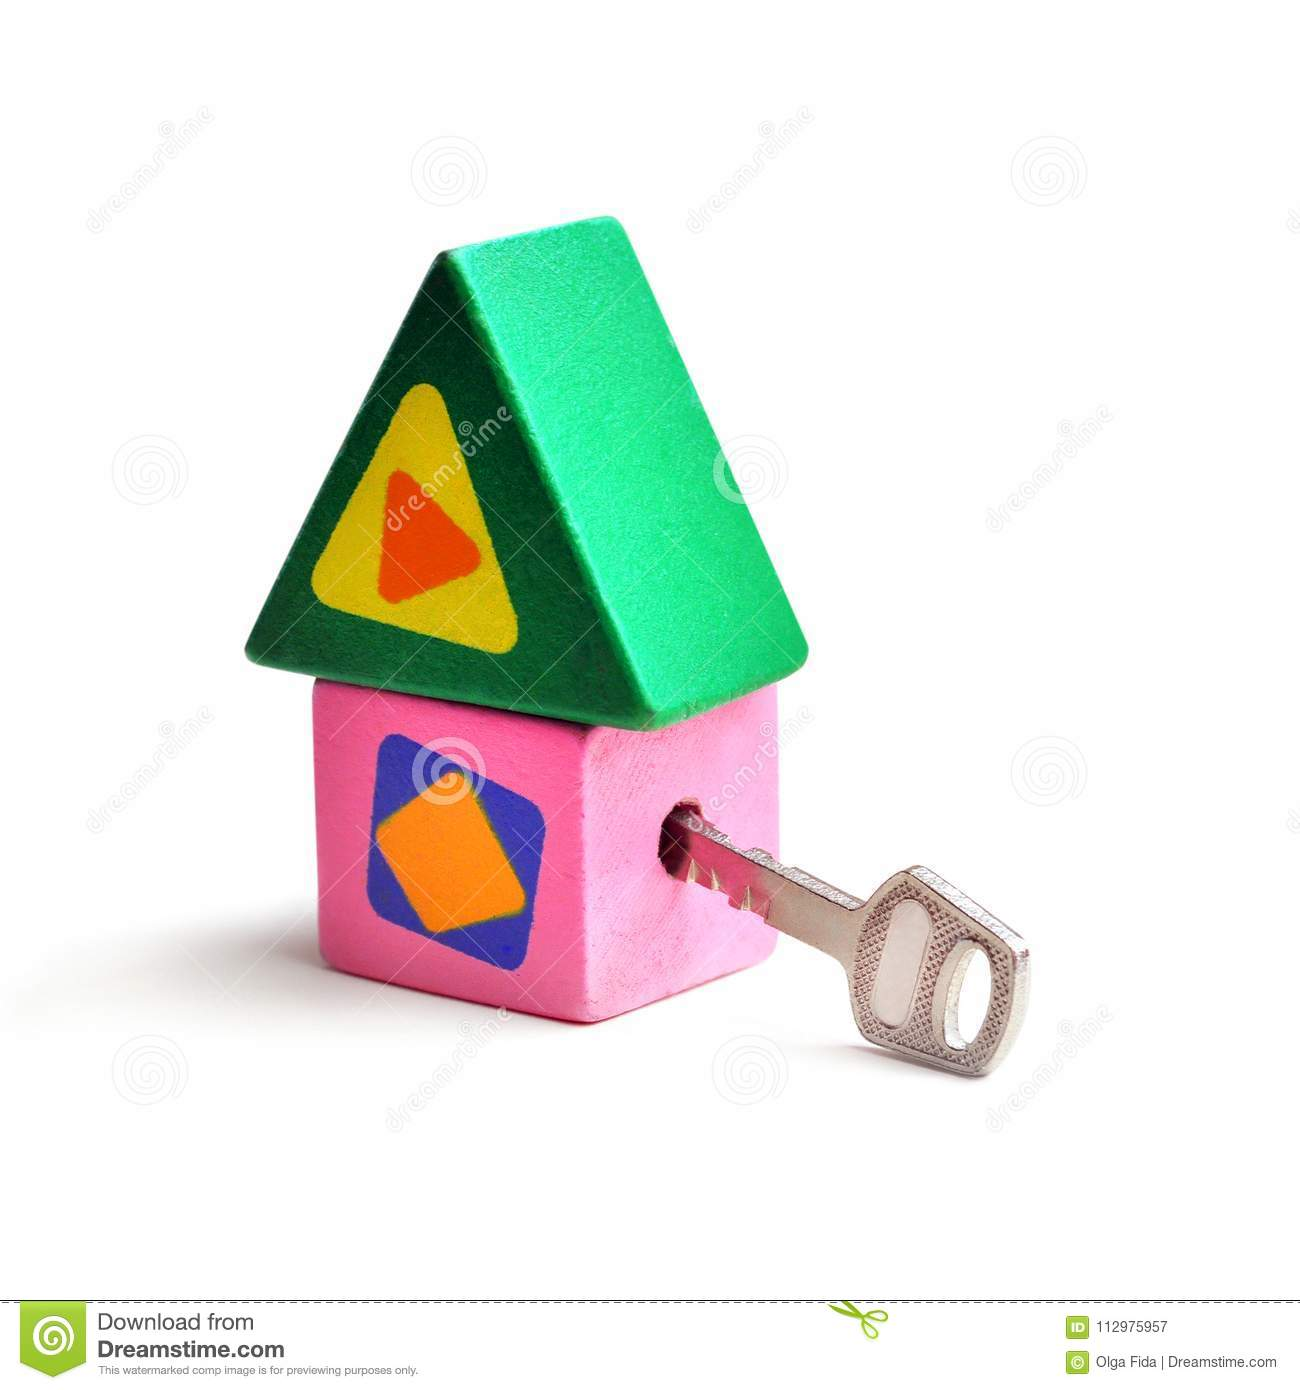 Toy, wooden, colored house with key